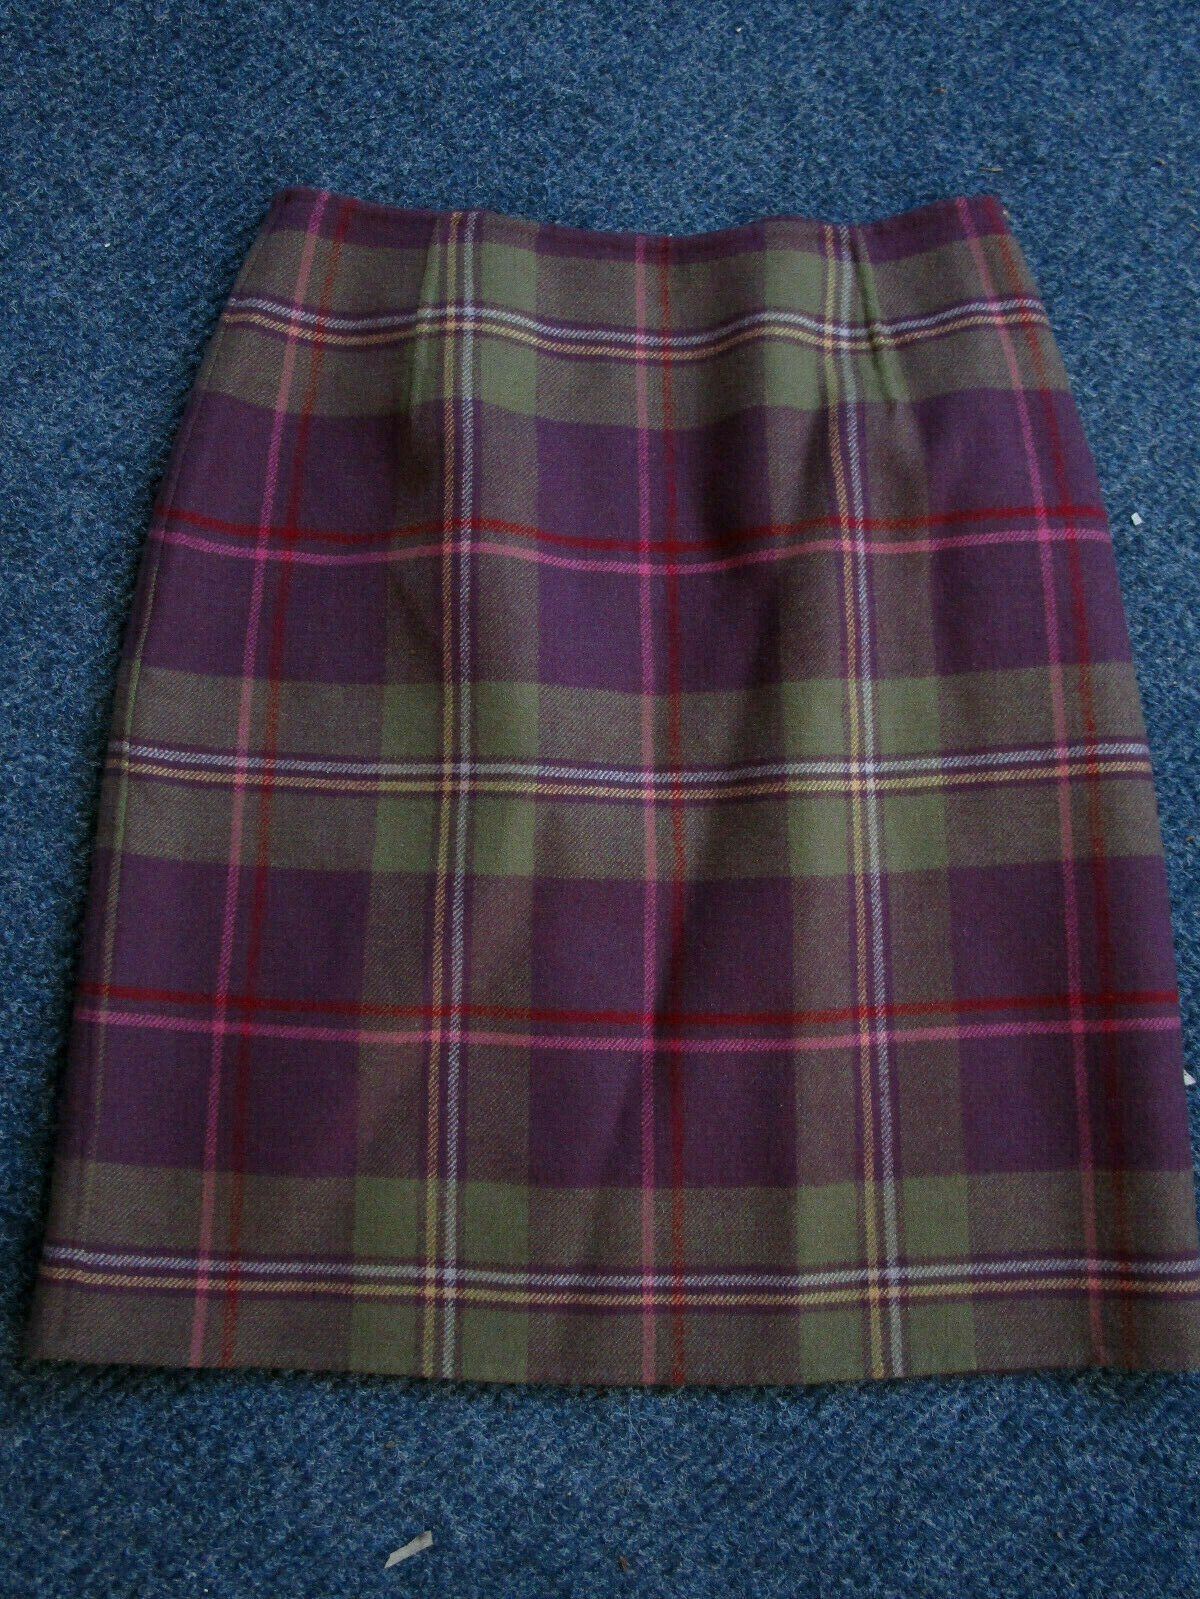 Pendleton 100% Virgin Wool Celtic Purple Green Plaid Fitted Secretary Skirt 8